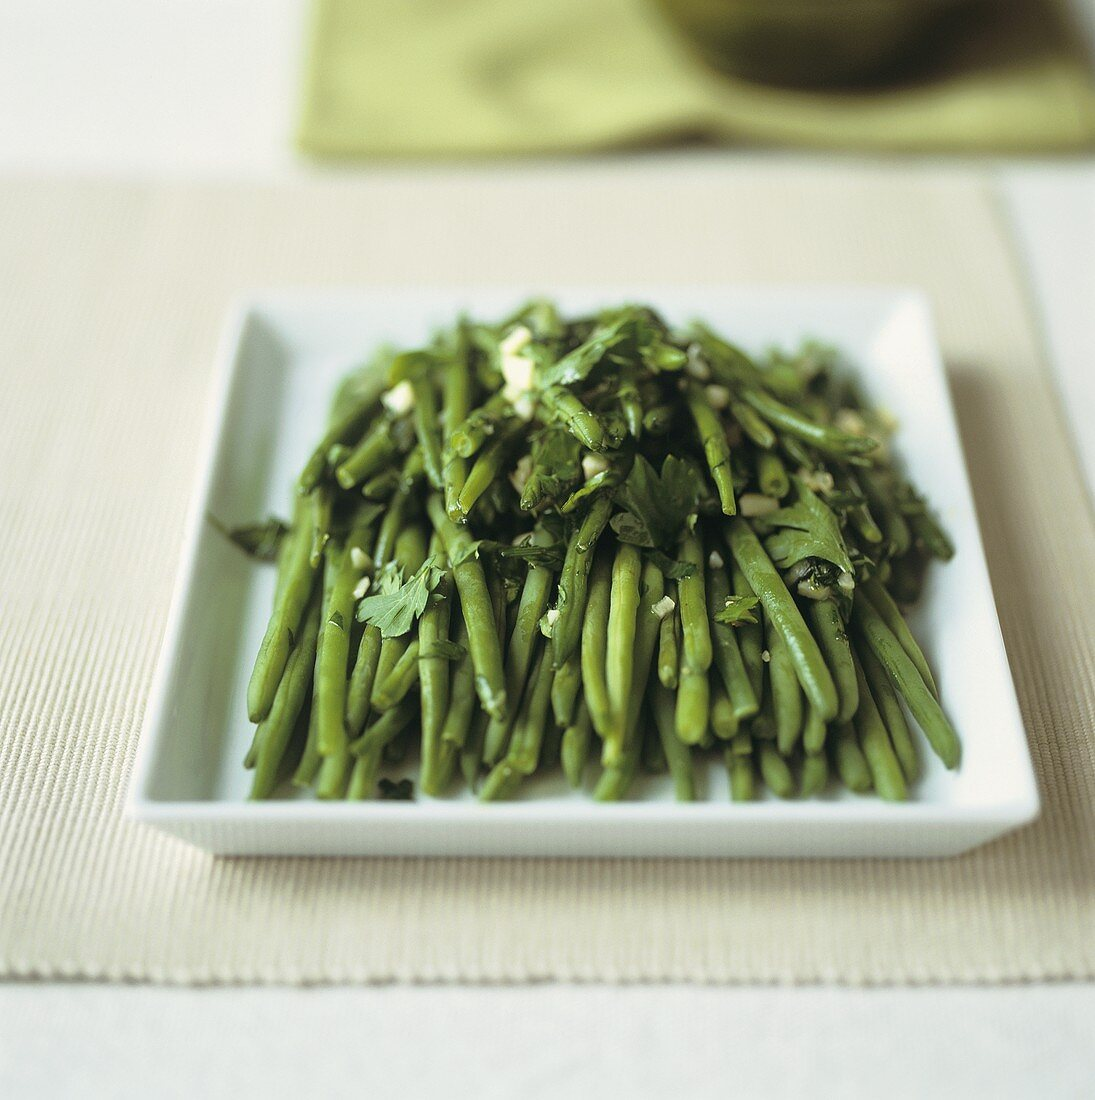 Green beans with garlic and parsley